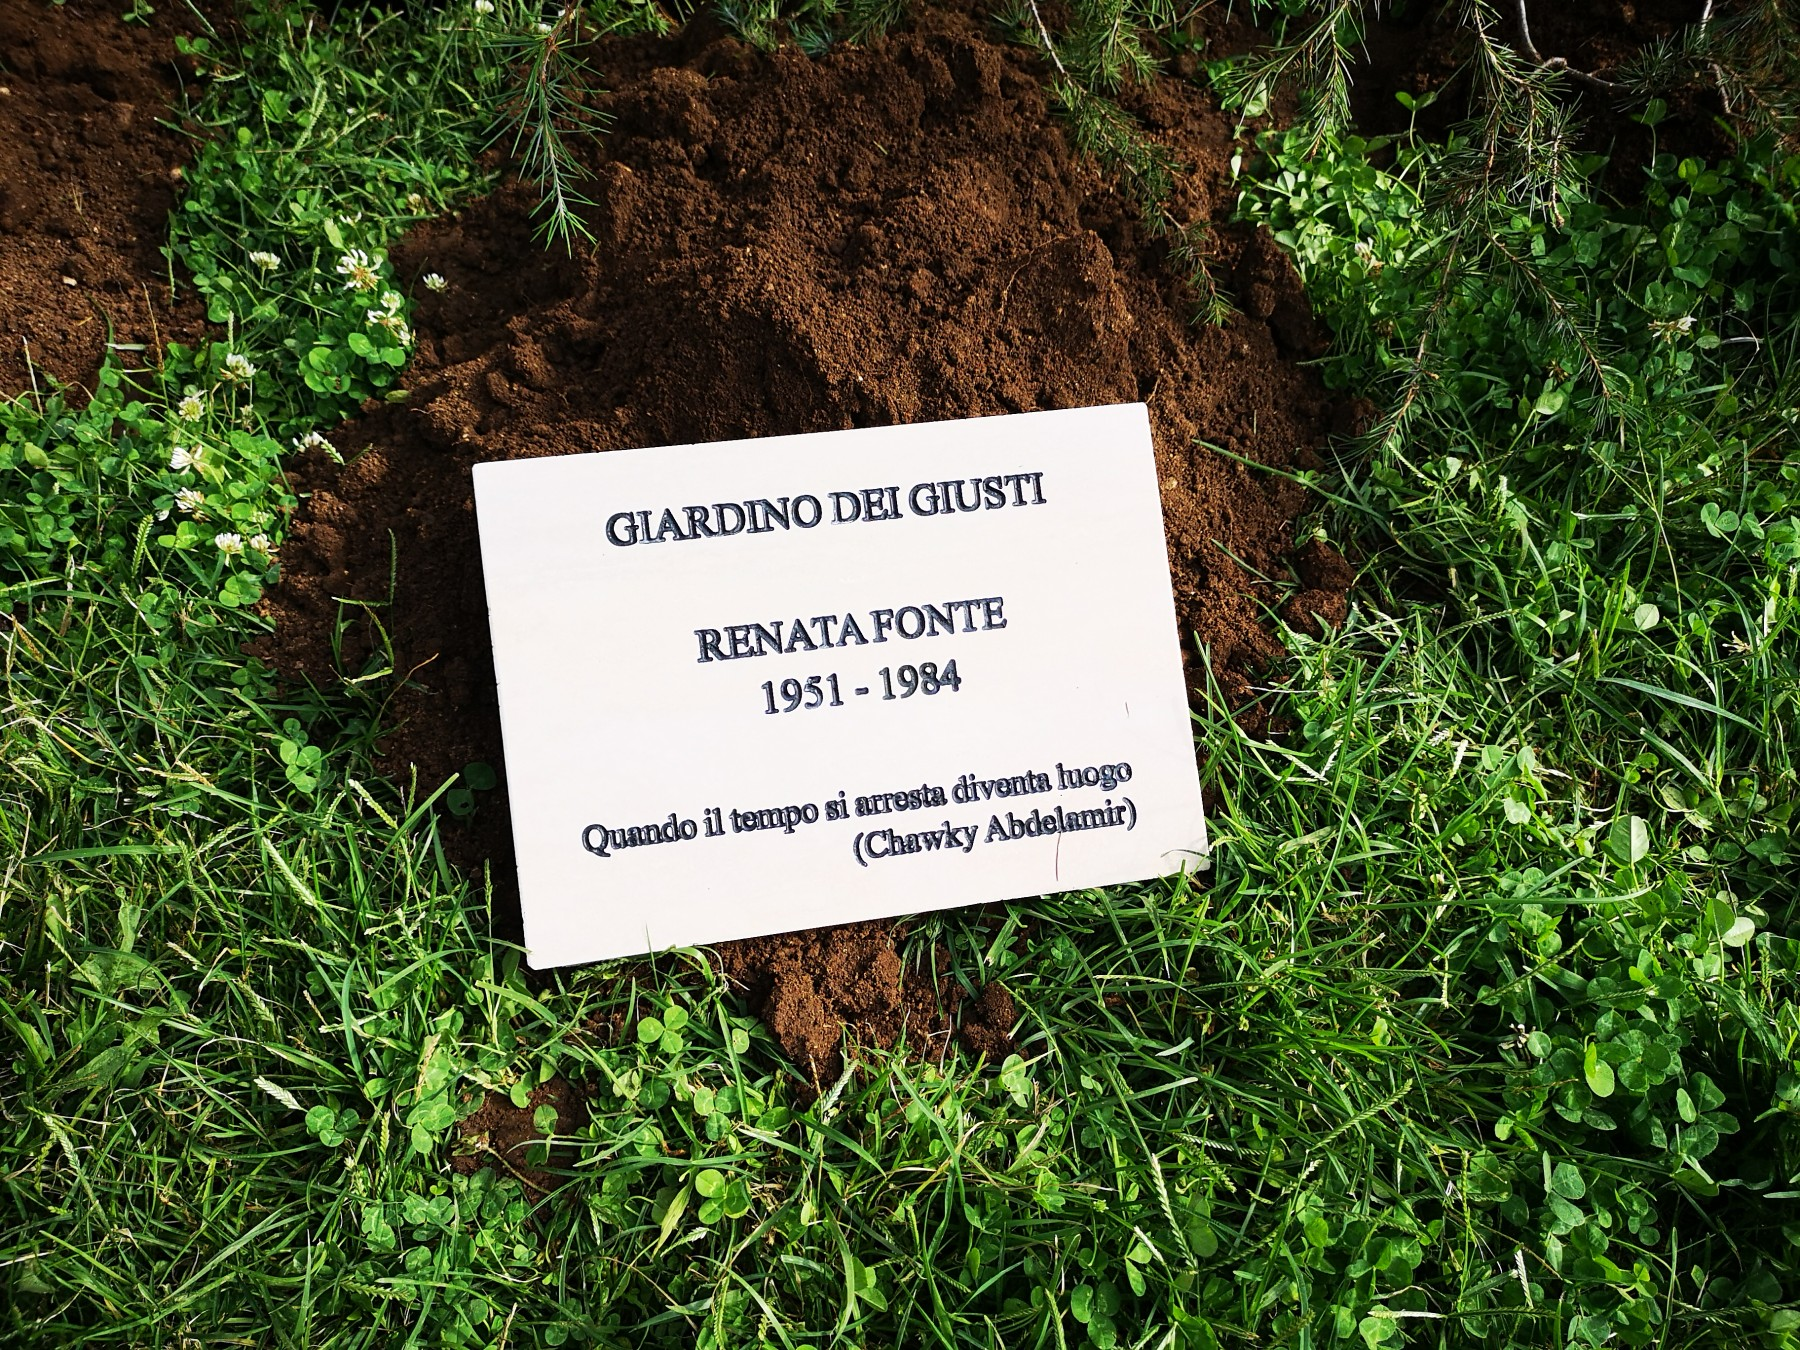 The Tree of the Righteous dedicated to Renata Fonte